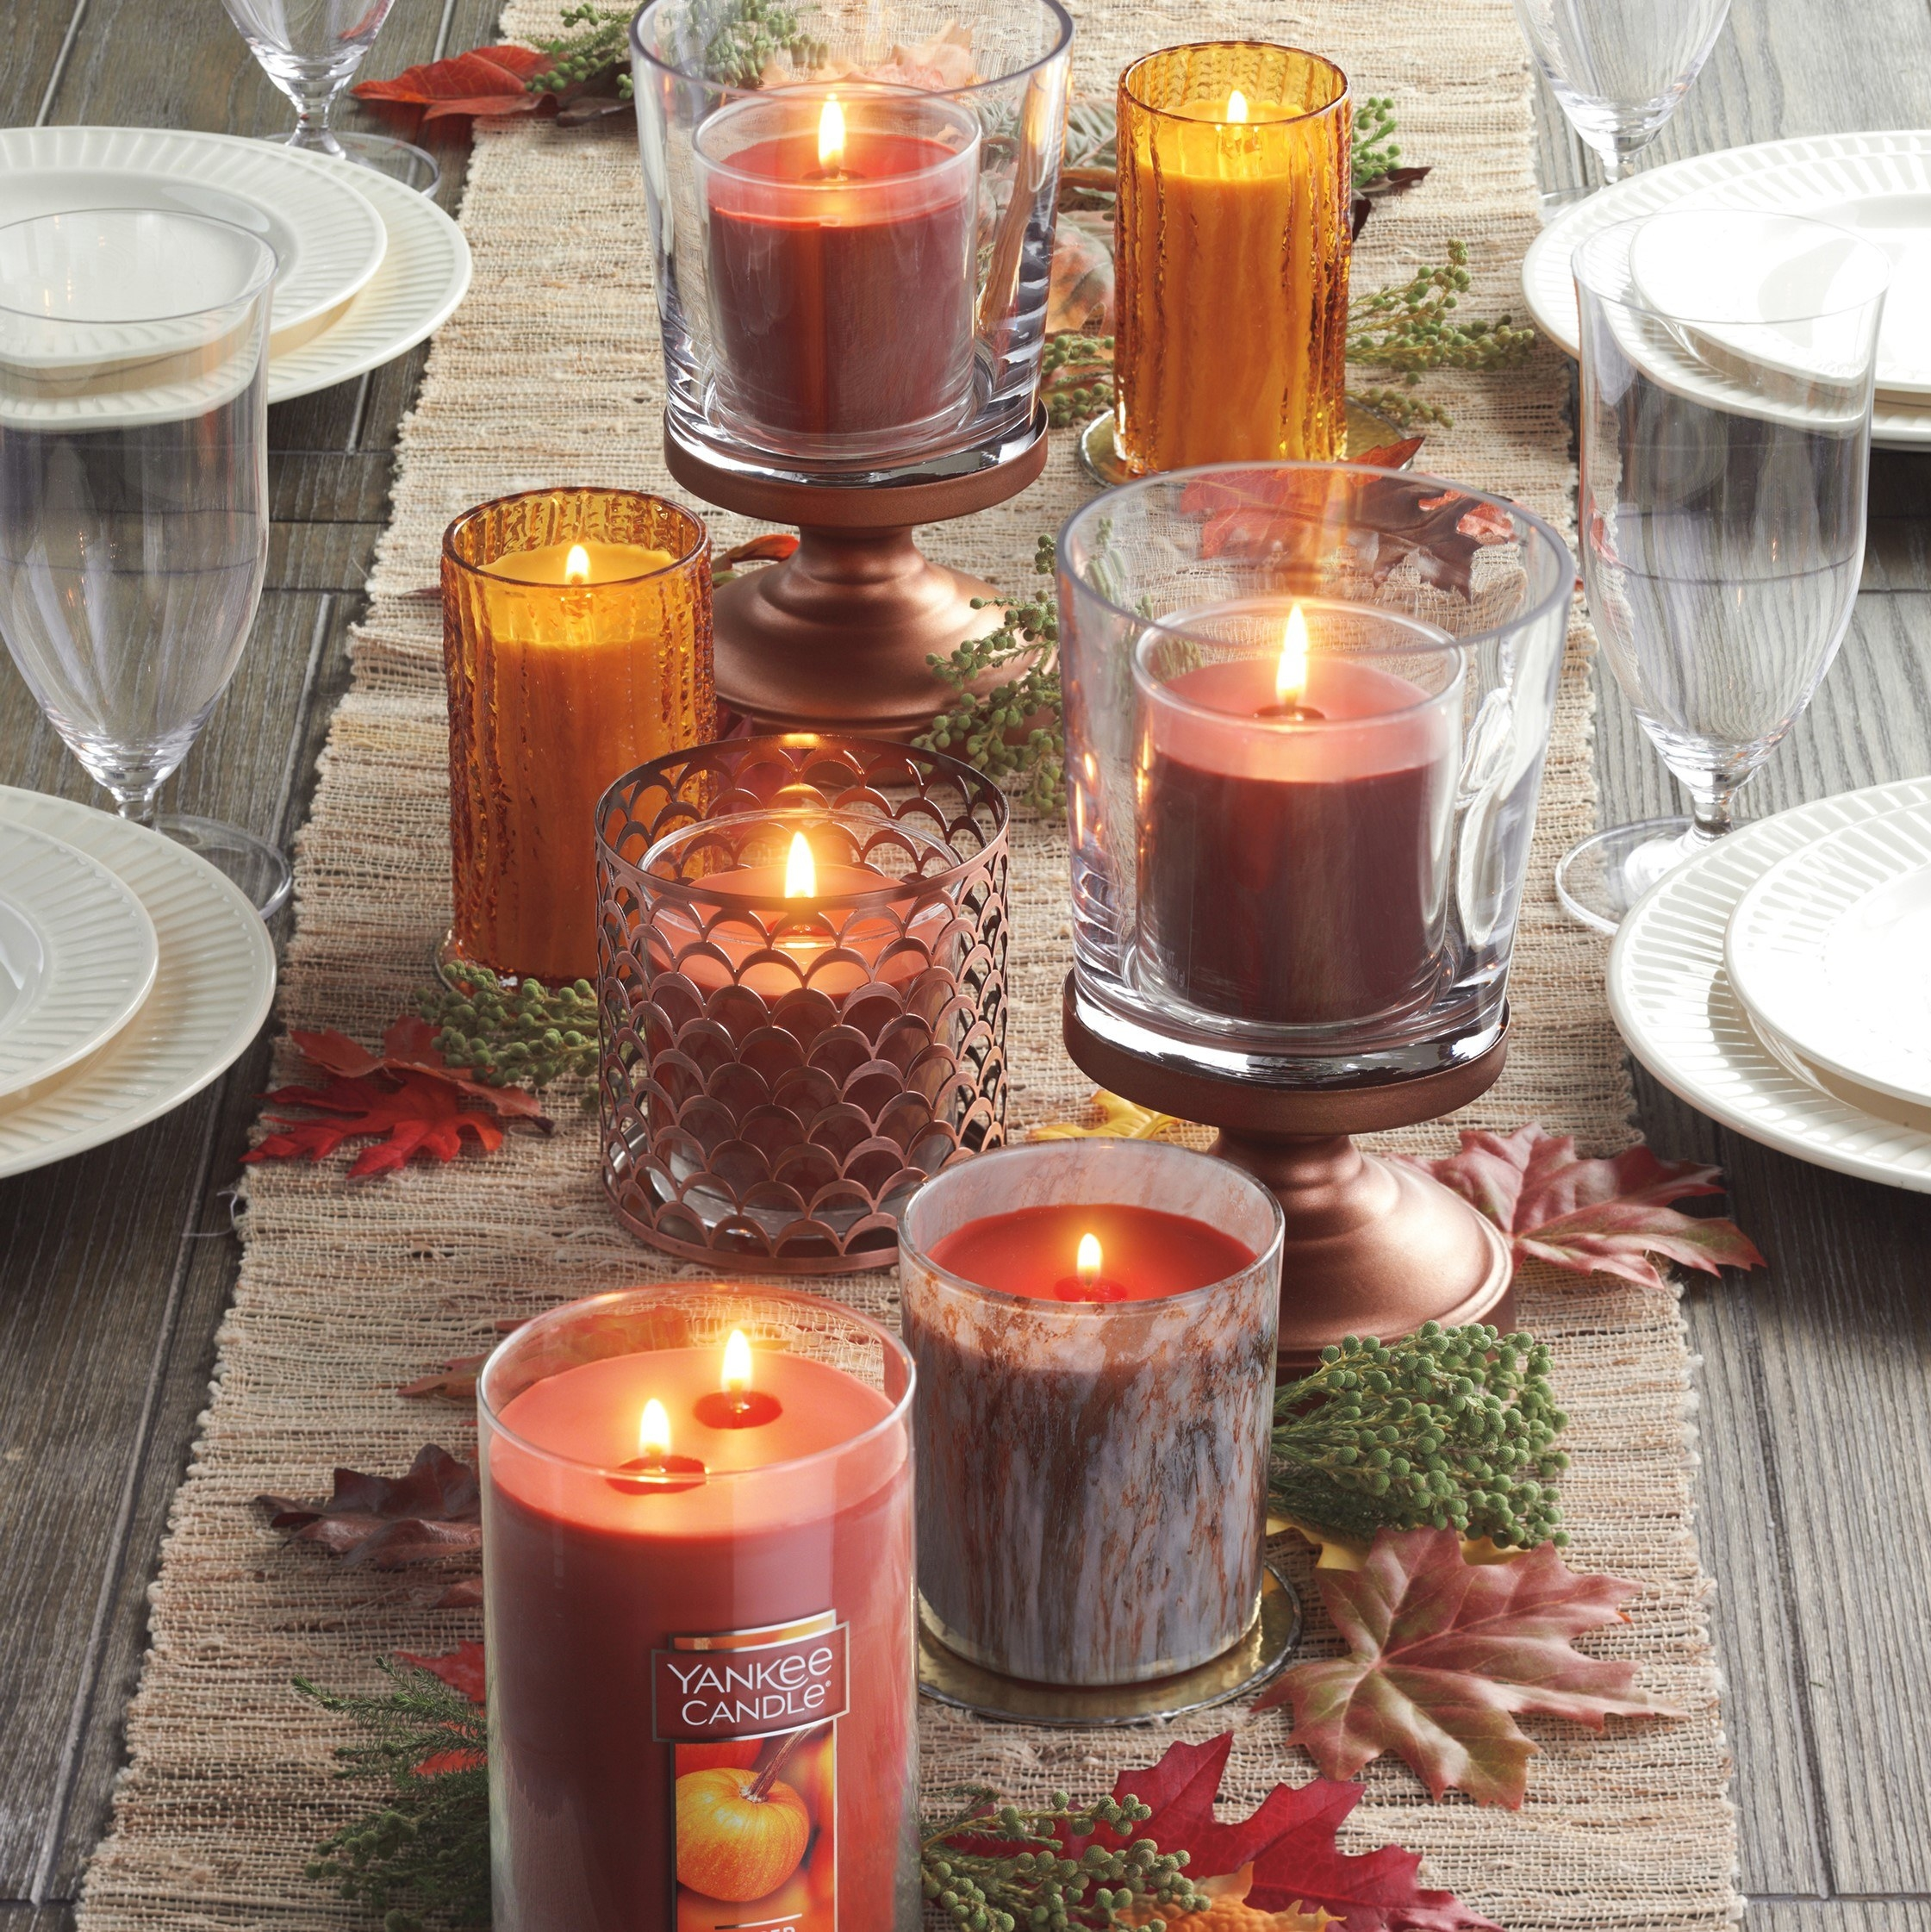 The Yankee Candle featured in multiple sizes on a fall dining table